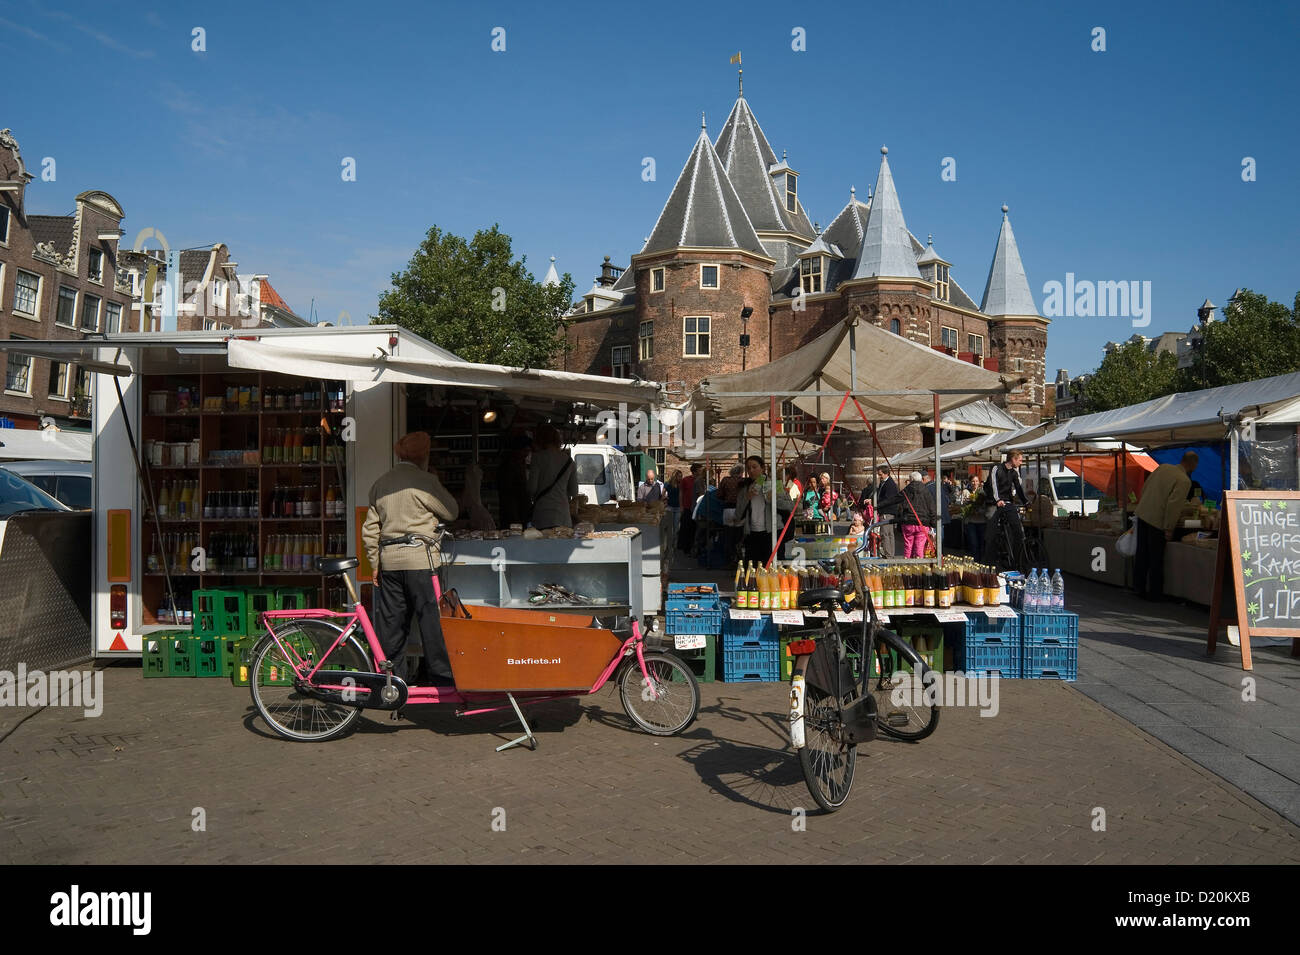 Nieuwmarkt with De Waag, Amsterdam, North Holland, The Netherlands - Stock Image